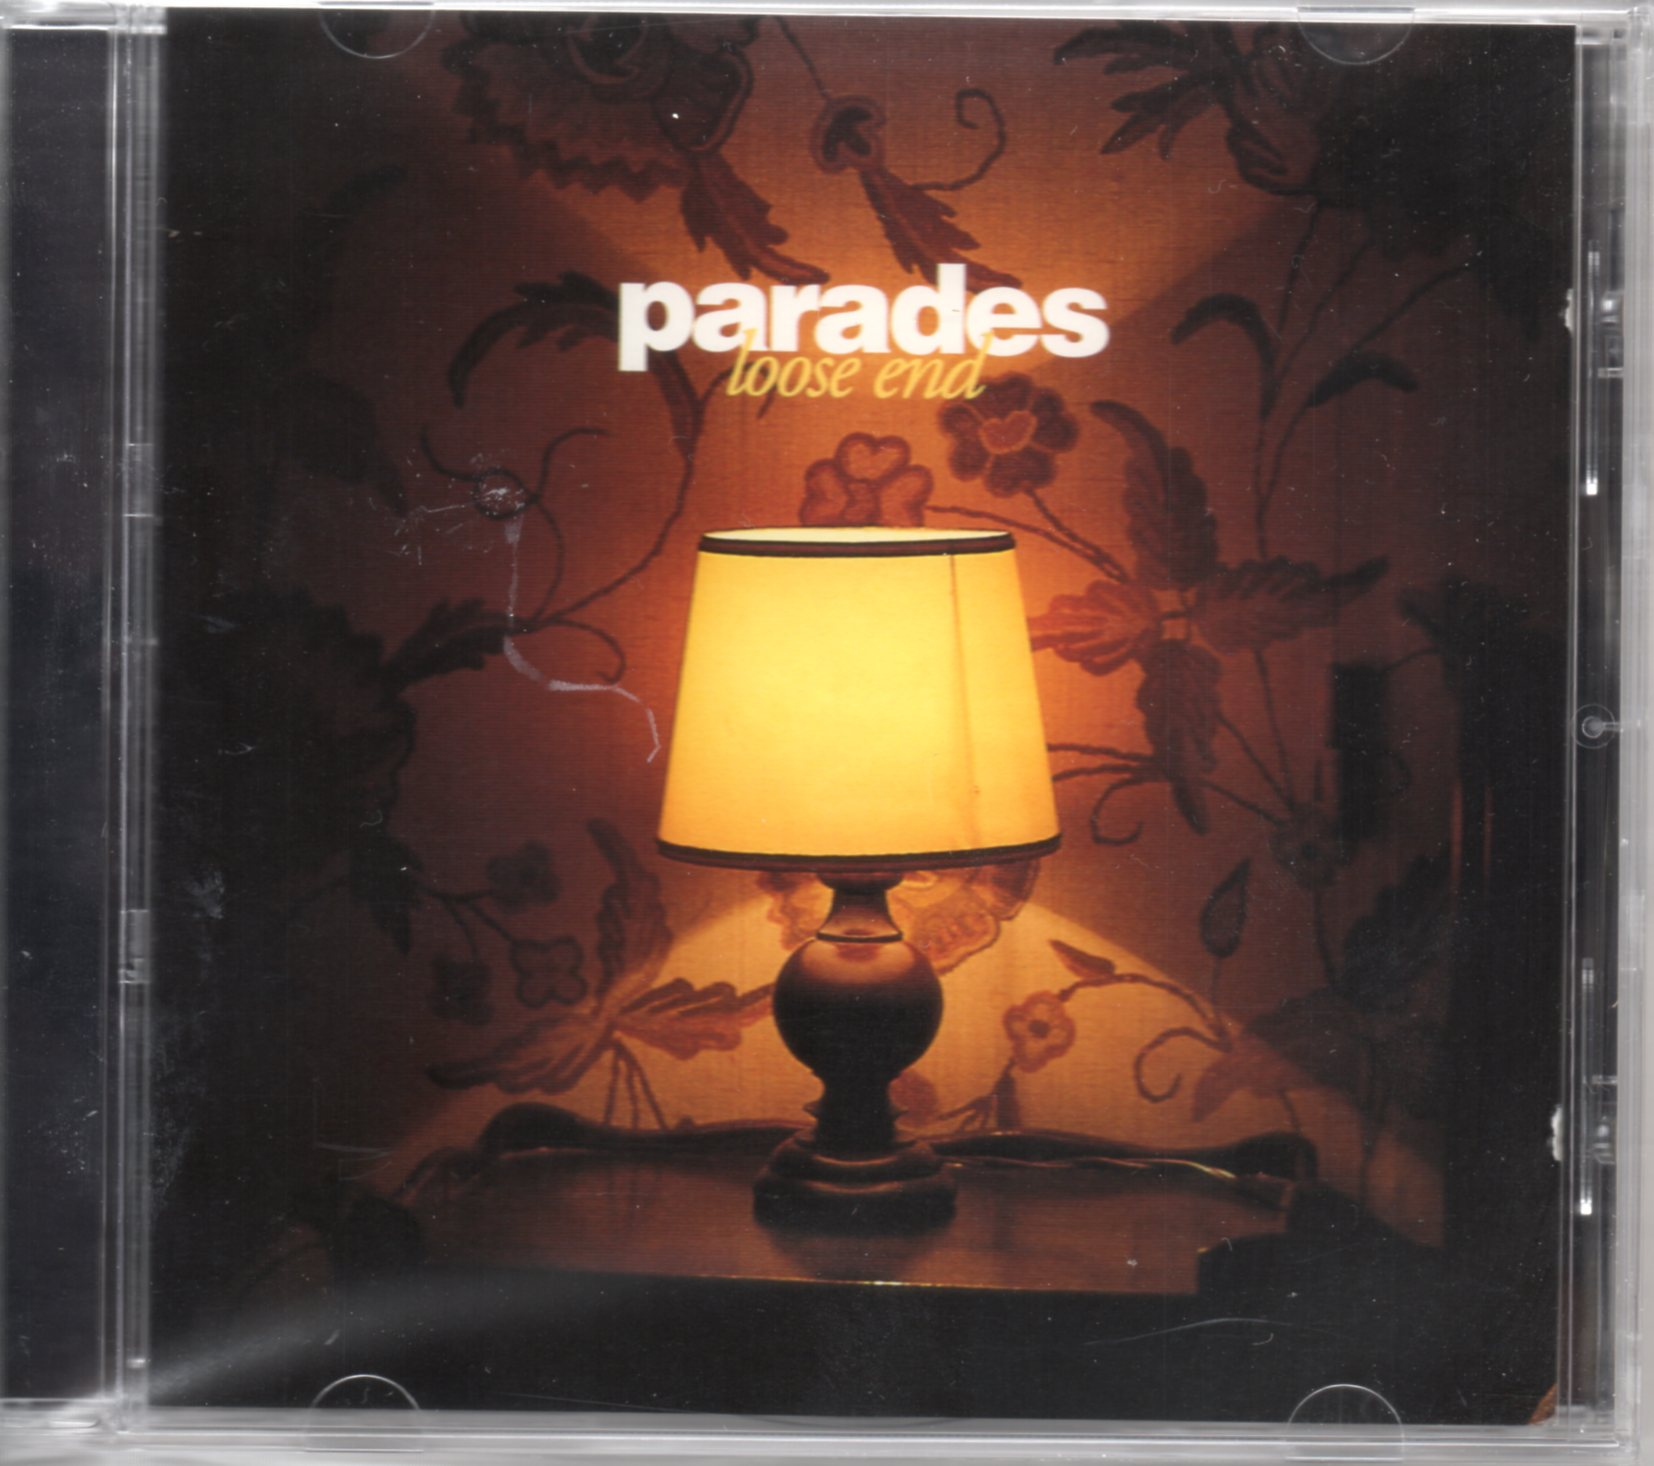 PARADES - Loose End 4-TRACK jewel case - CD Maxi